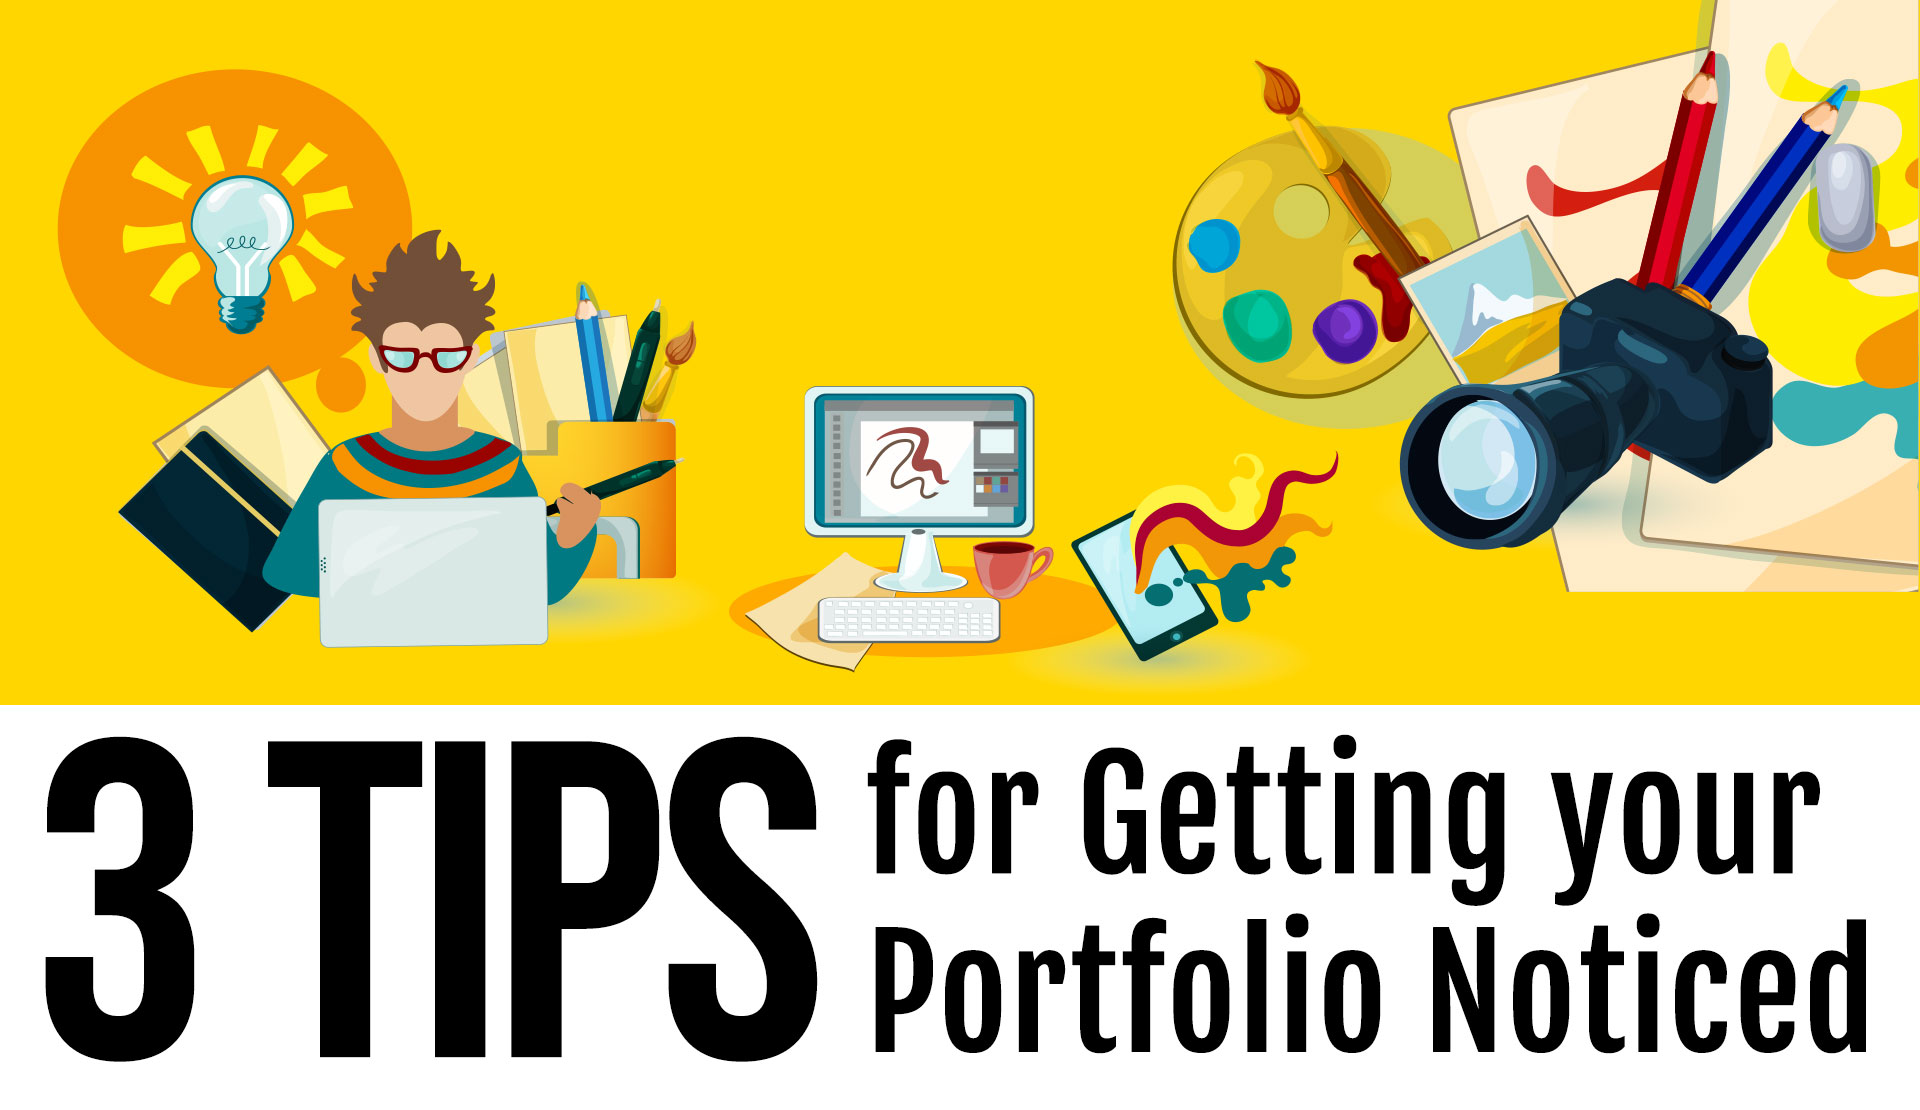 3 Tips for Getting your Portfolio Noticed